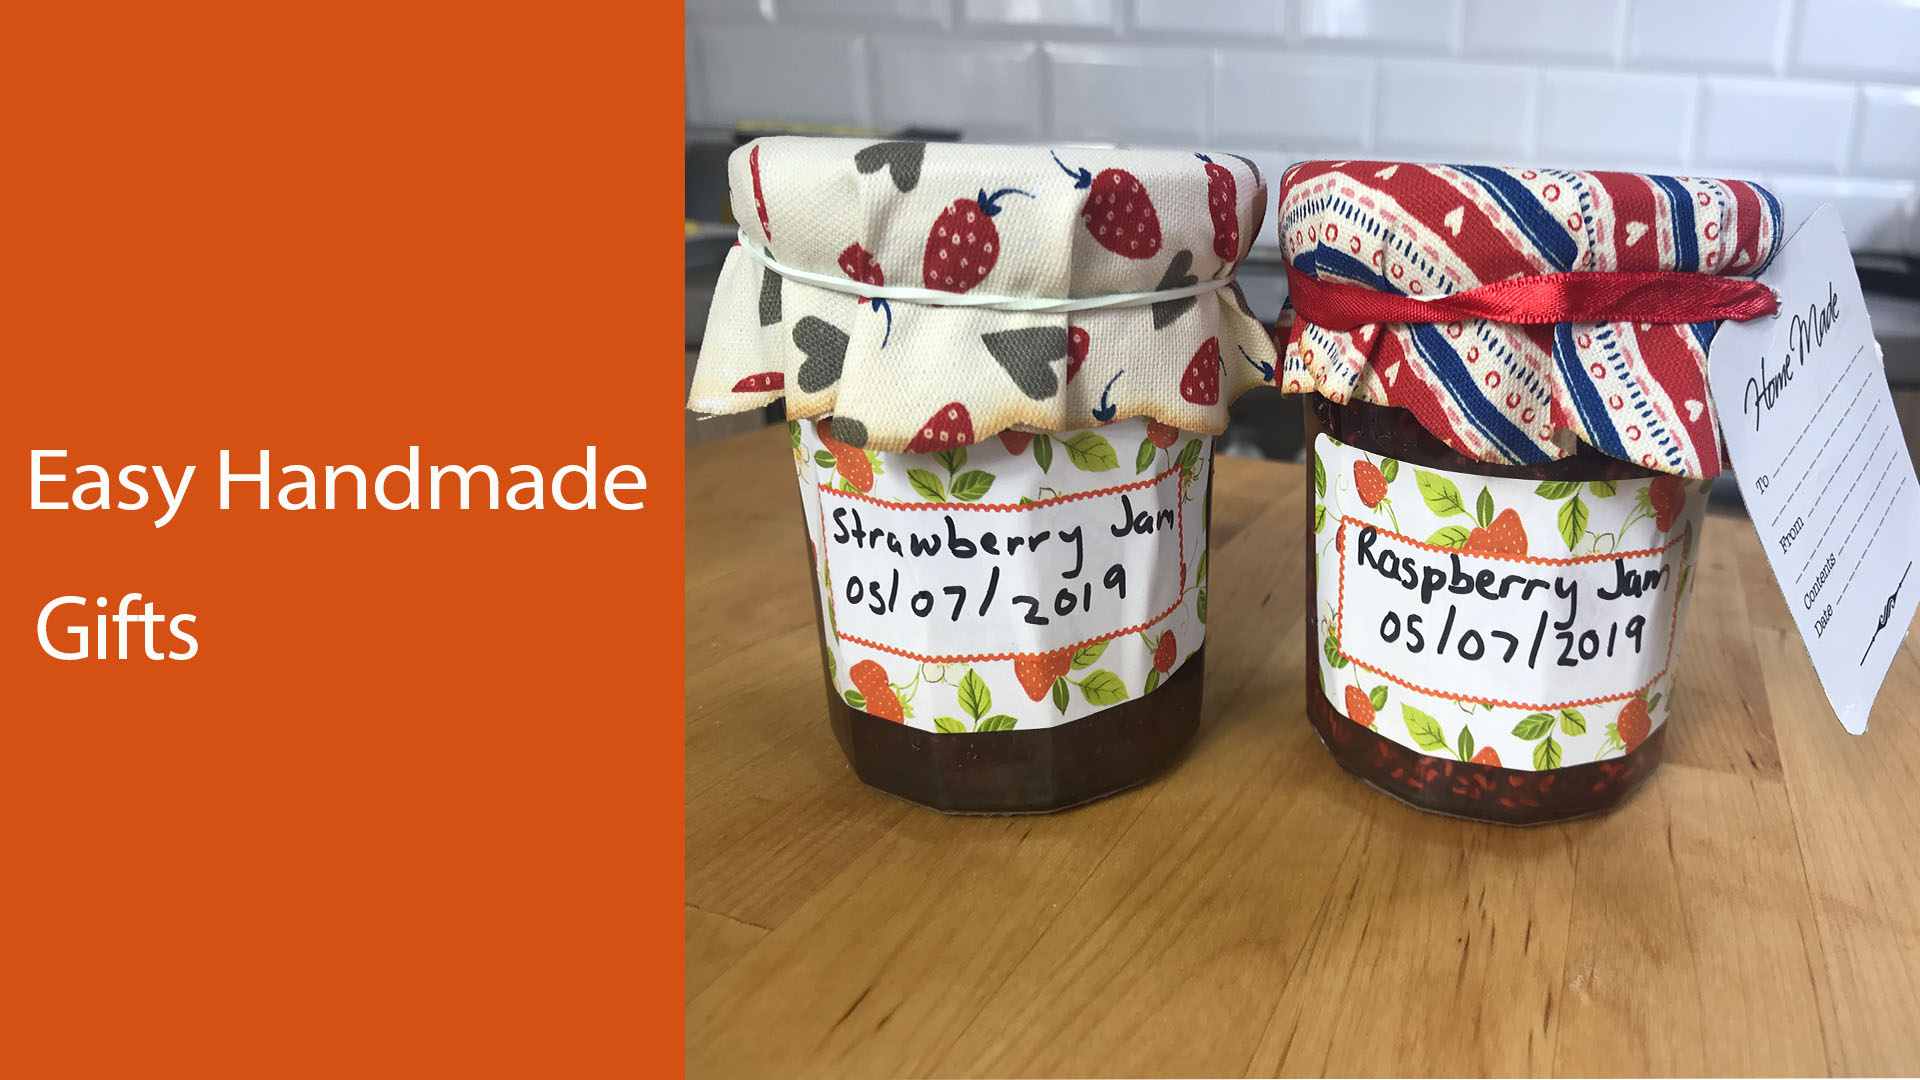 Homemade jam in jam jars